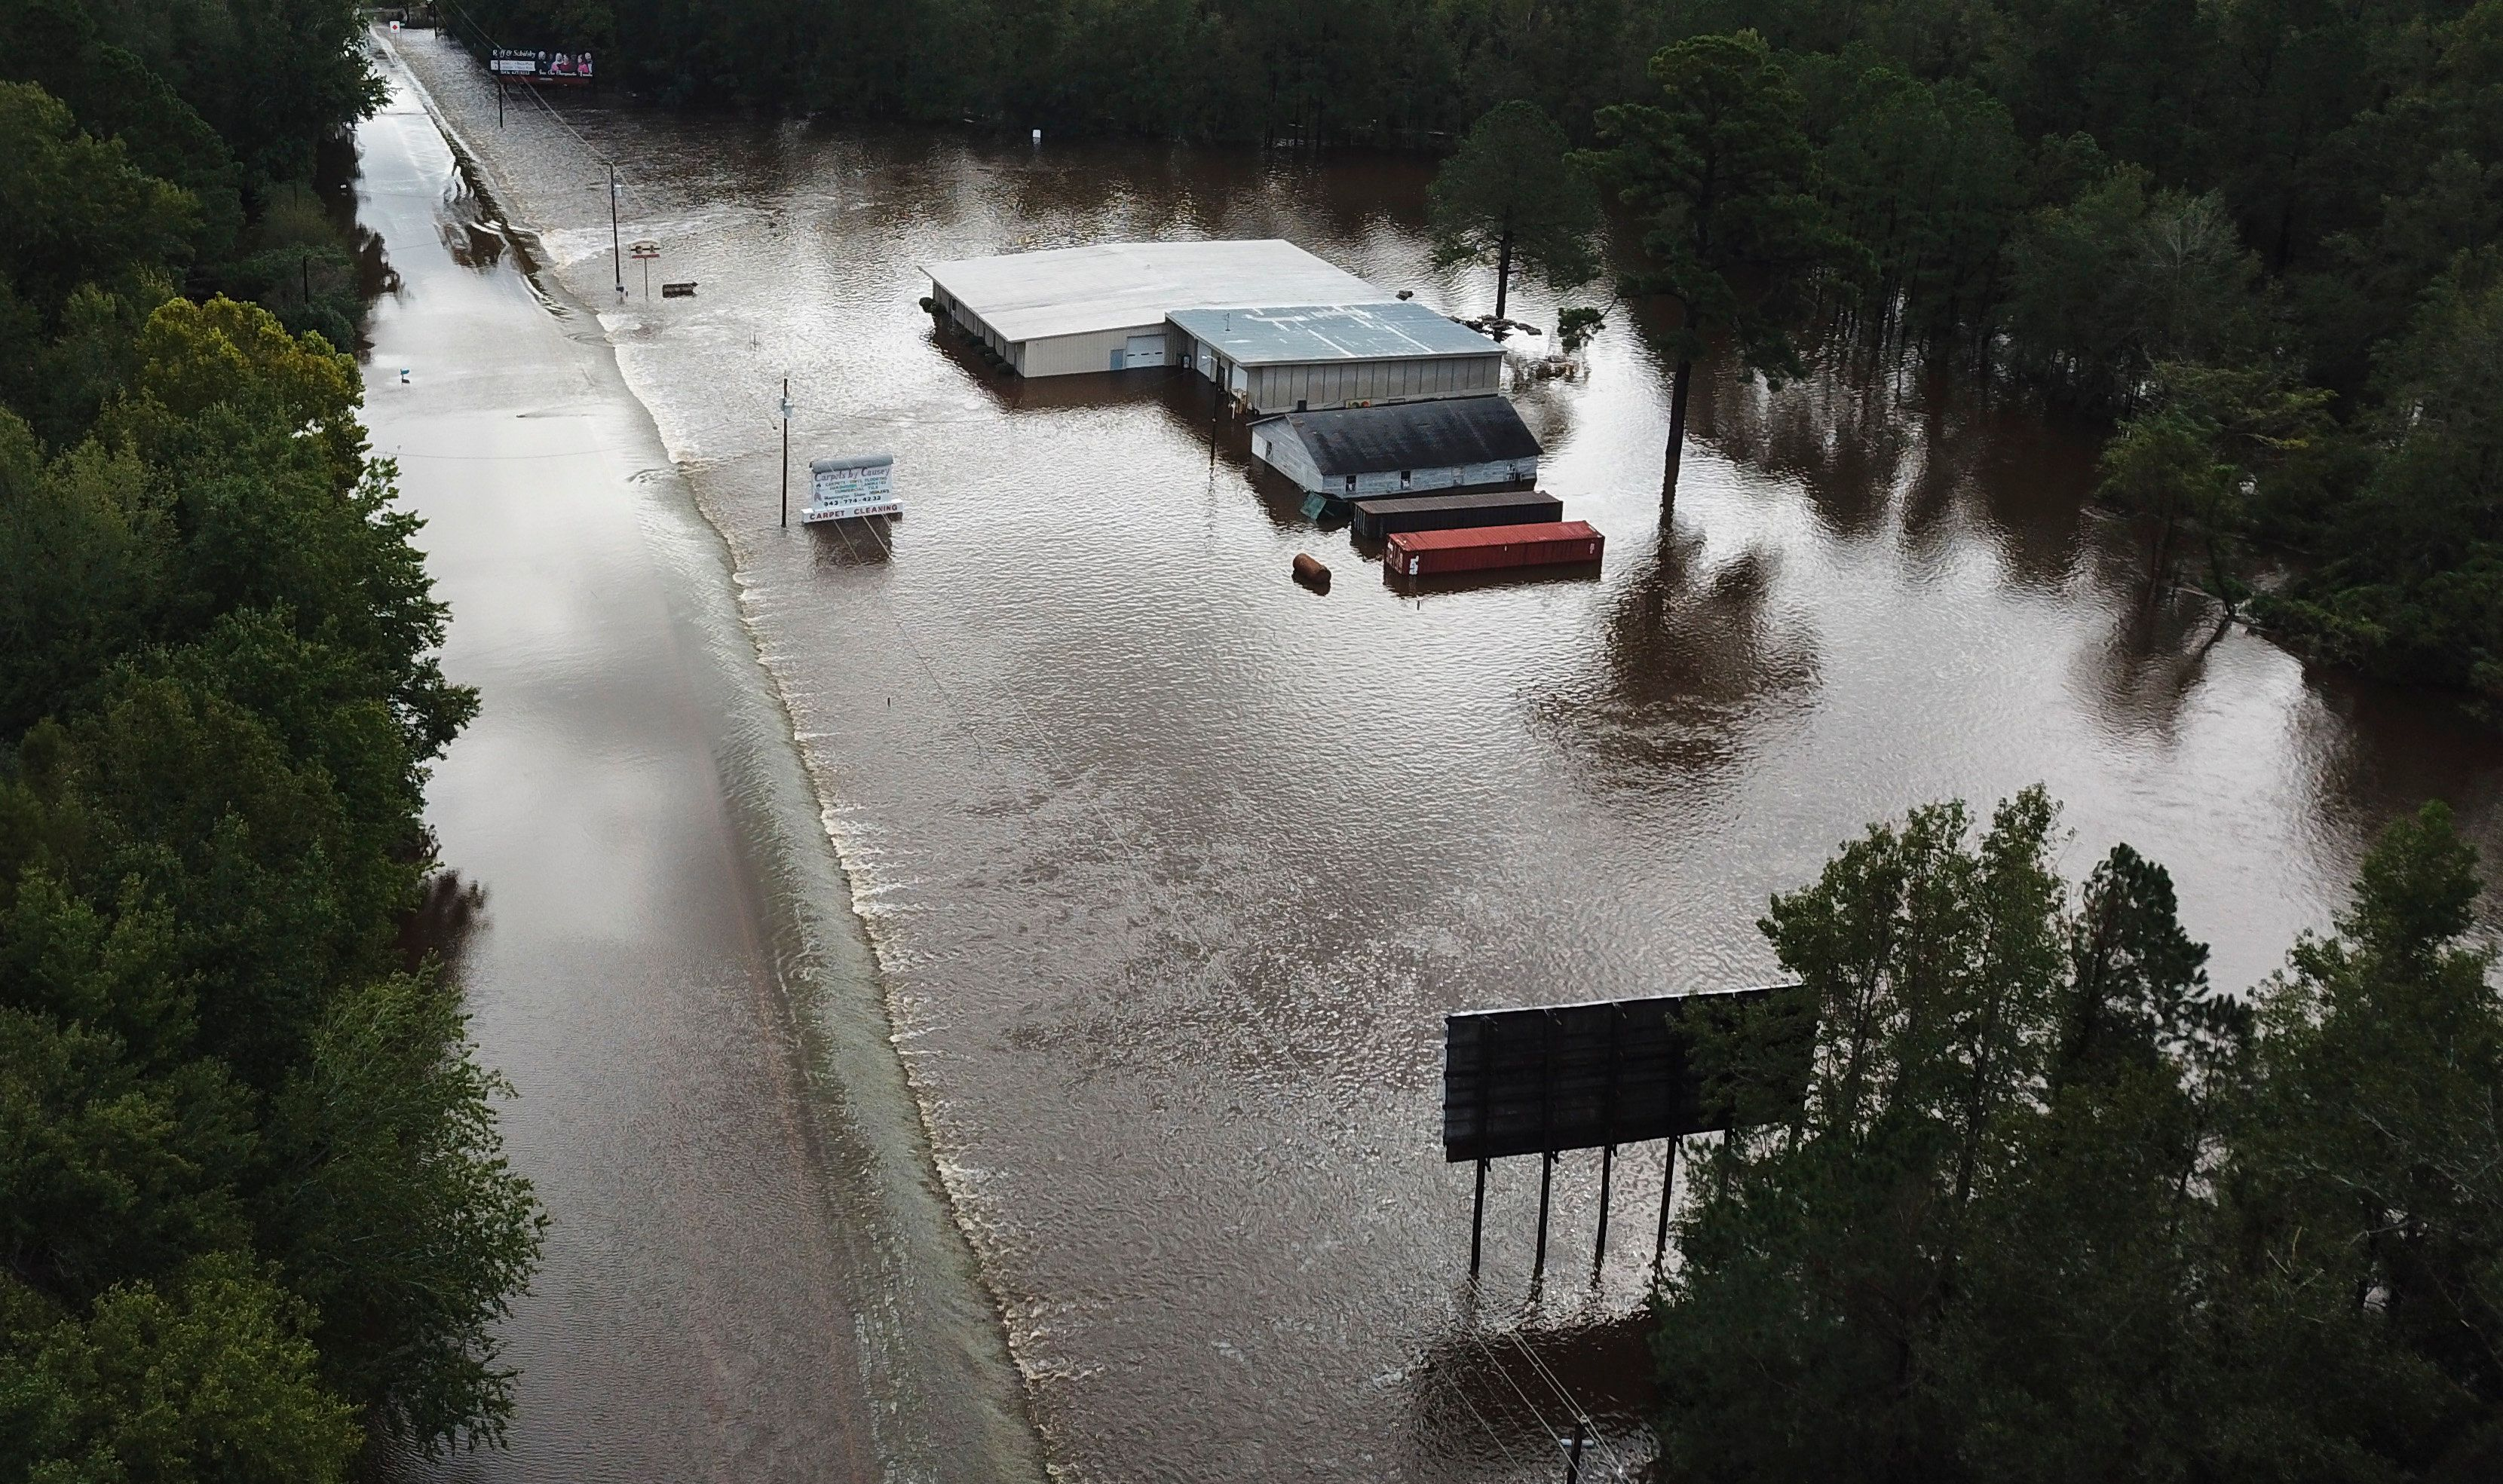 Water from The Little Pee Dee River floods business and washes out part of Rte. 301